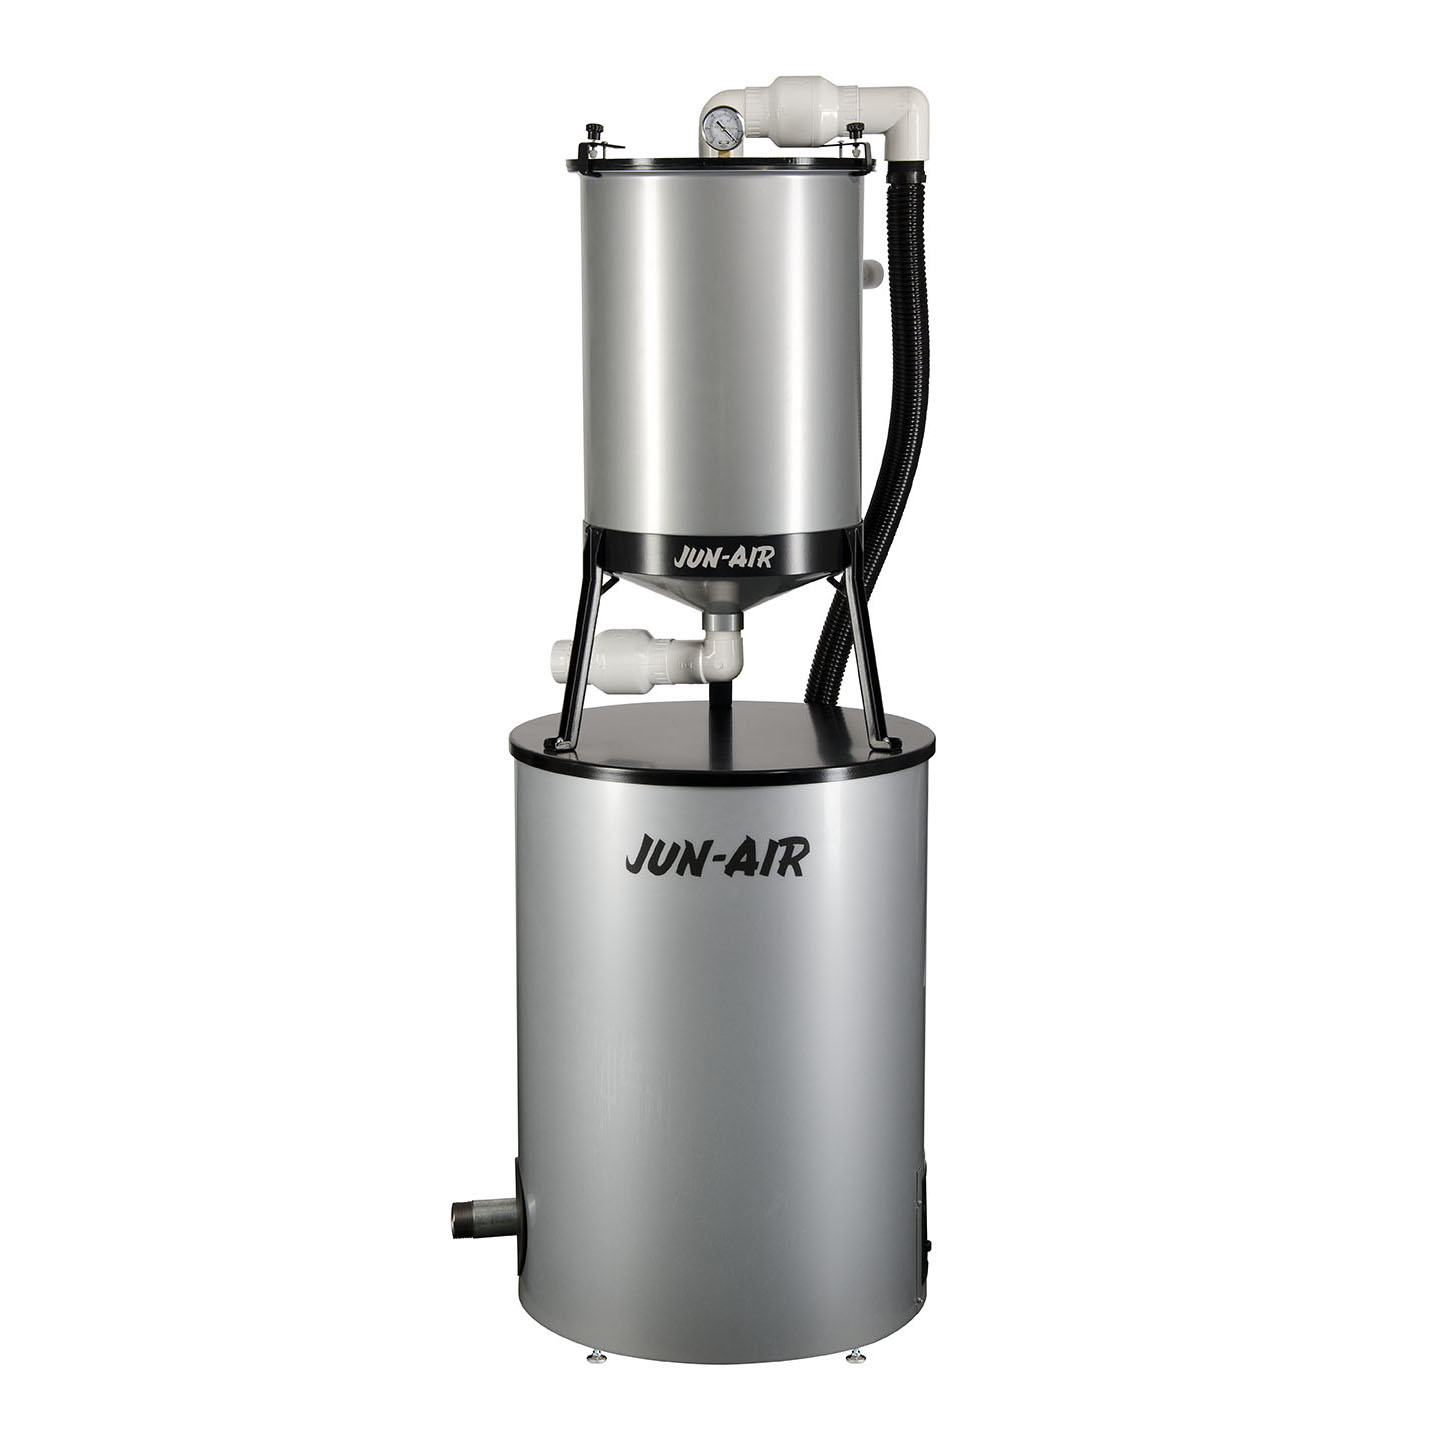 JUN-AIR Dental compressor